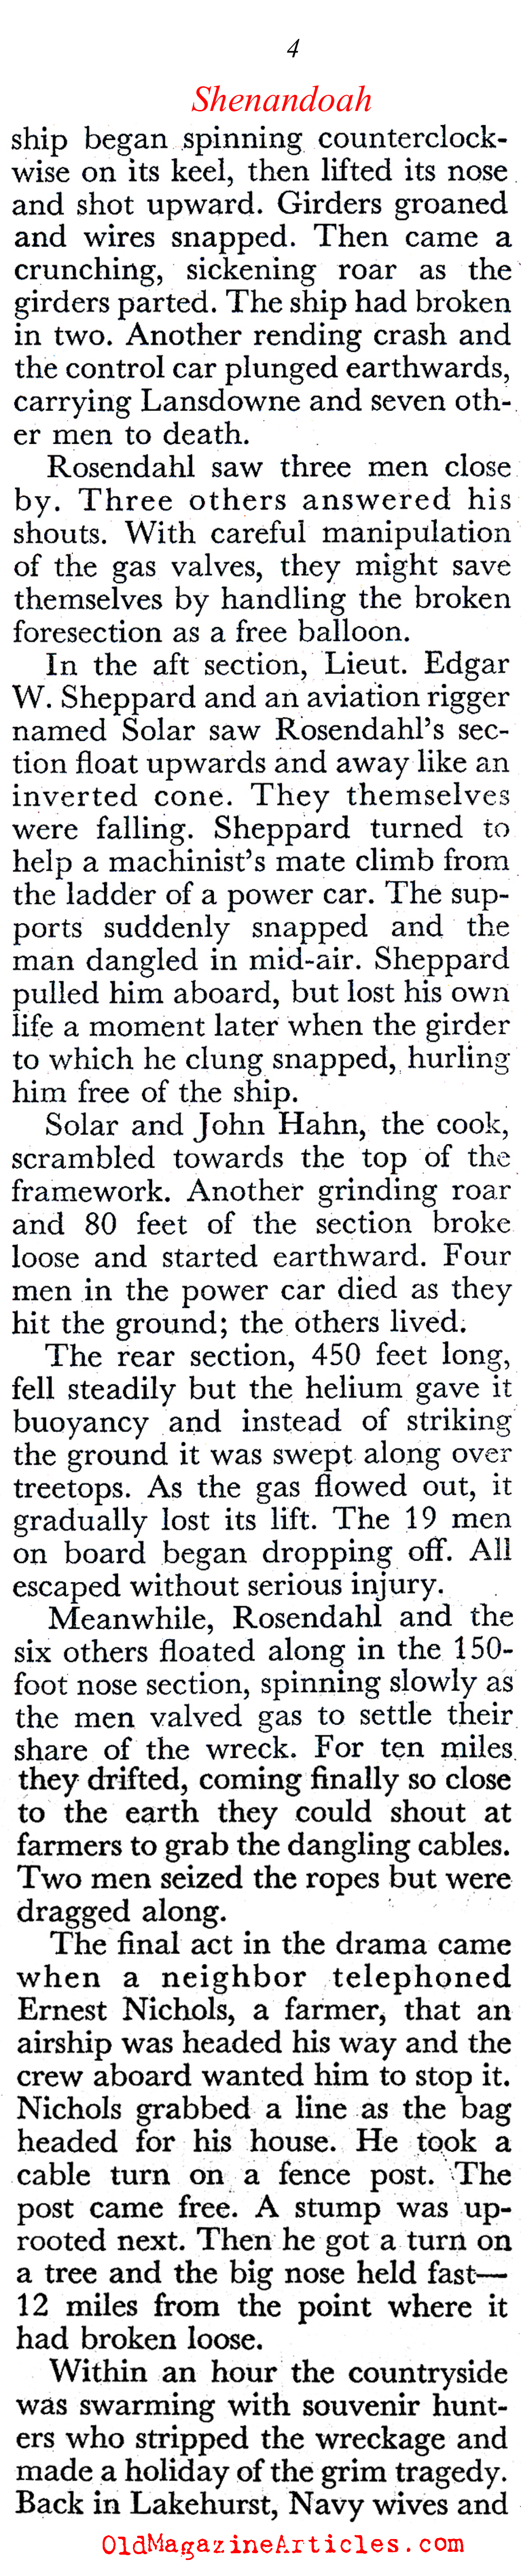 The Destruction of the ''Shenandoah'' (Coronet Magazine, 1949)